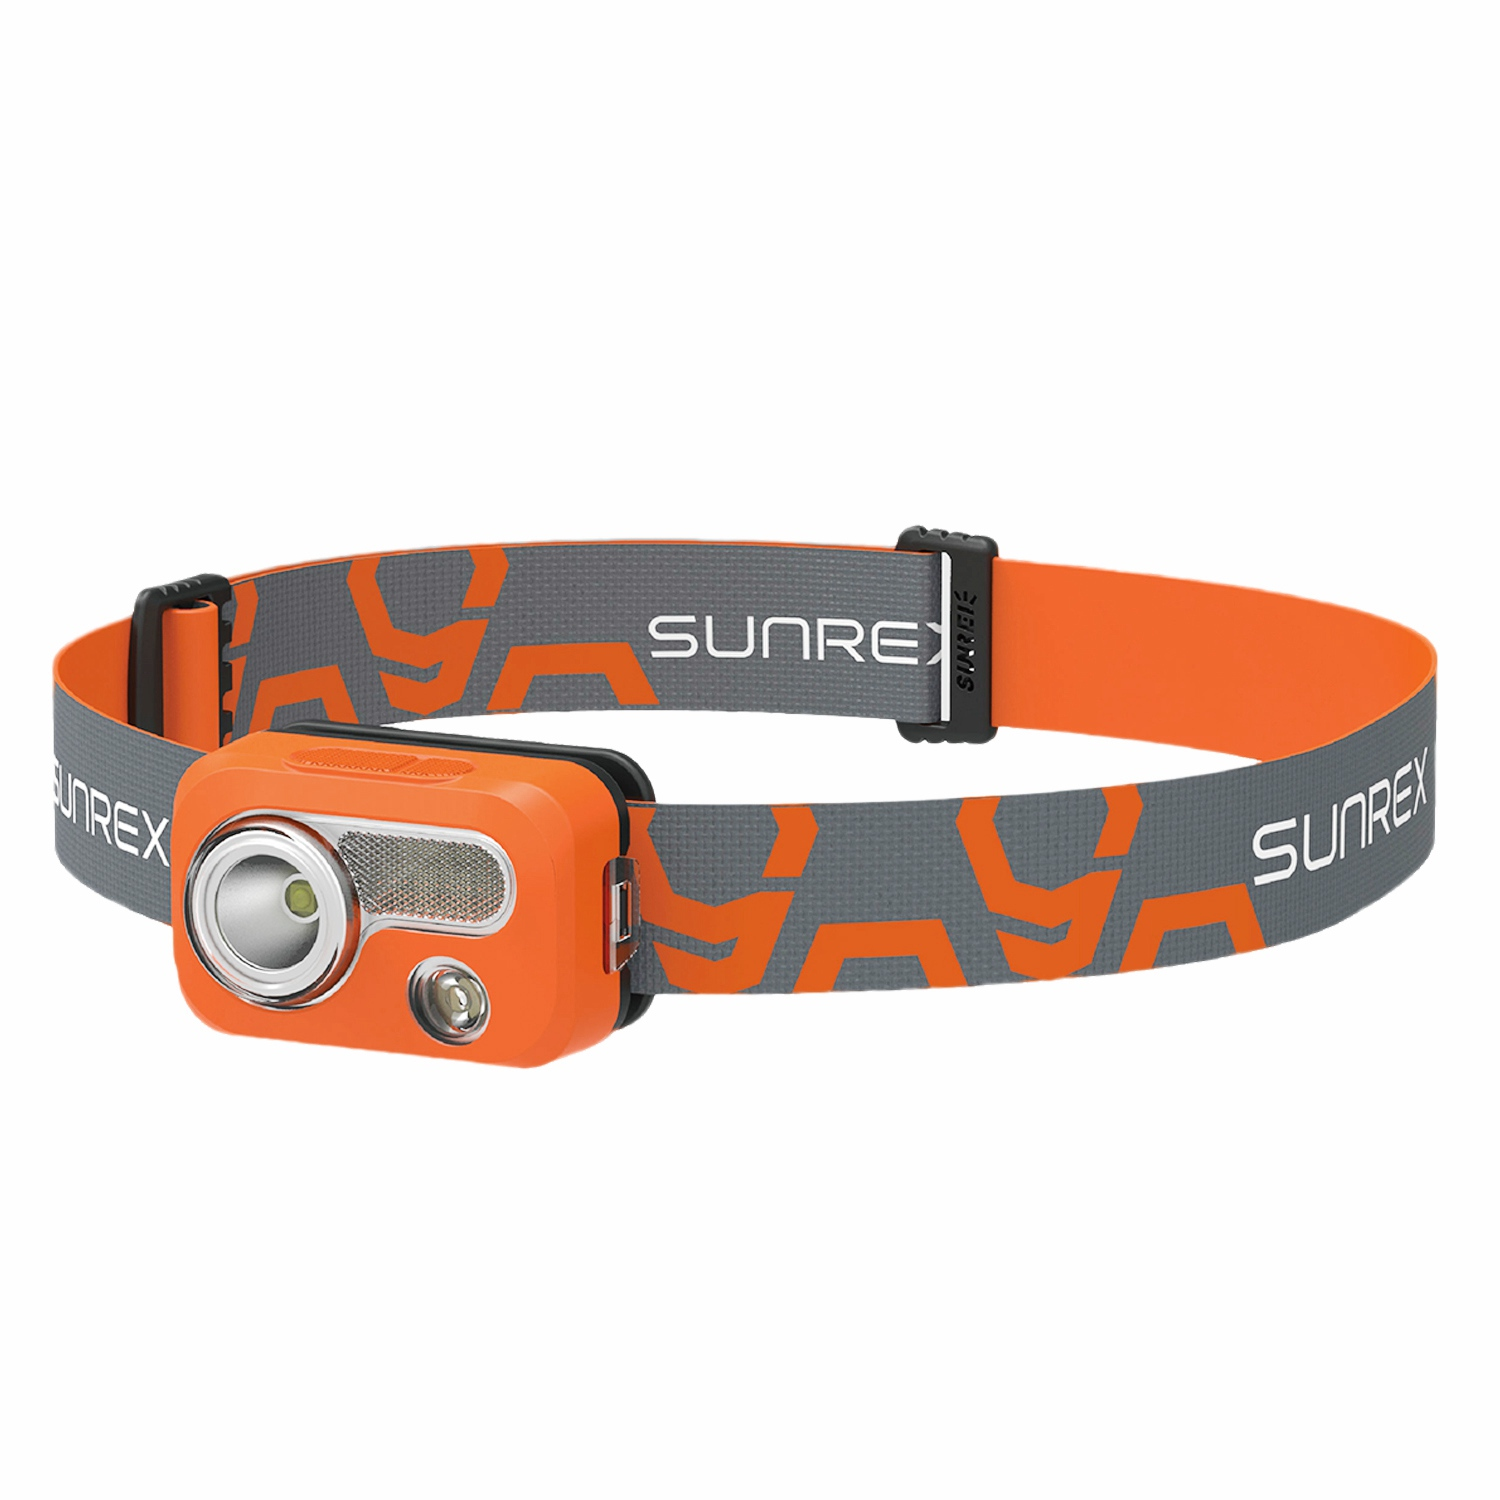 SUNREE Waterproof IPX7 Hiking Camping LED Head Light Lamp Portable Outdoor SOS Light with 6 Lighting Modes Ultra Bright Flashl